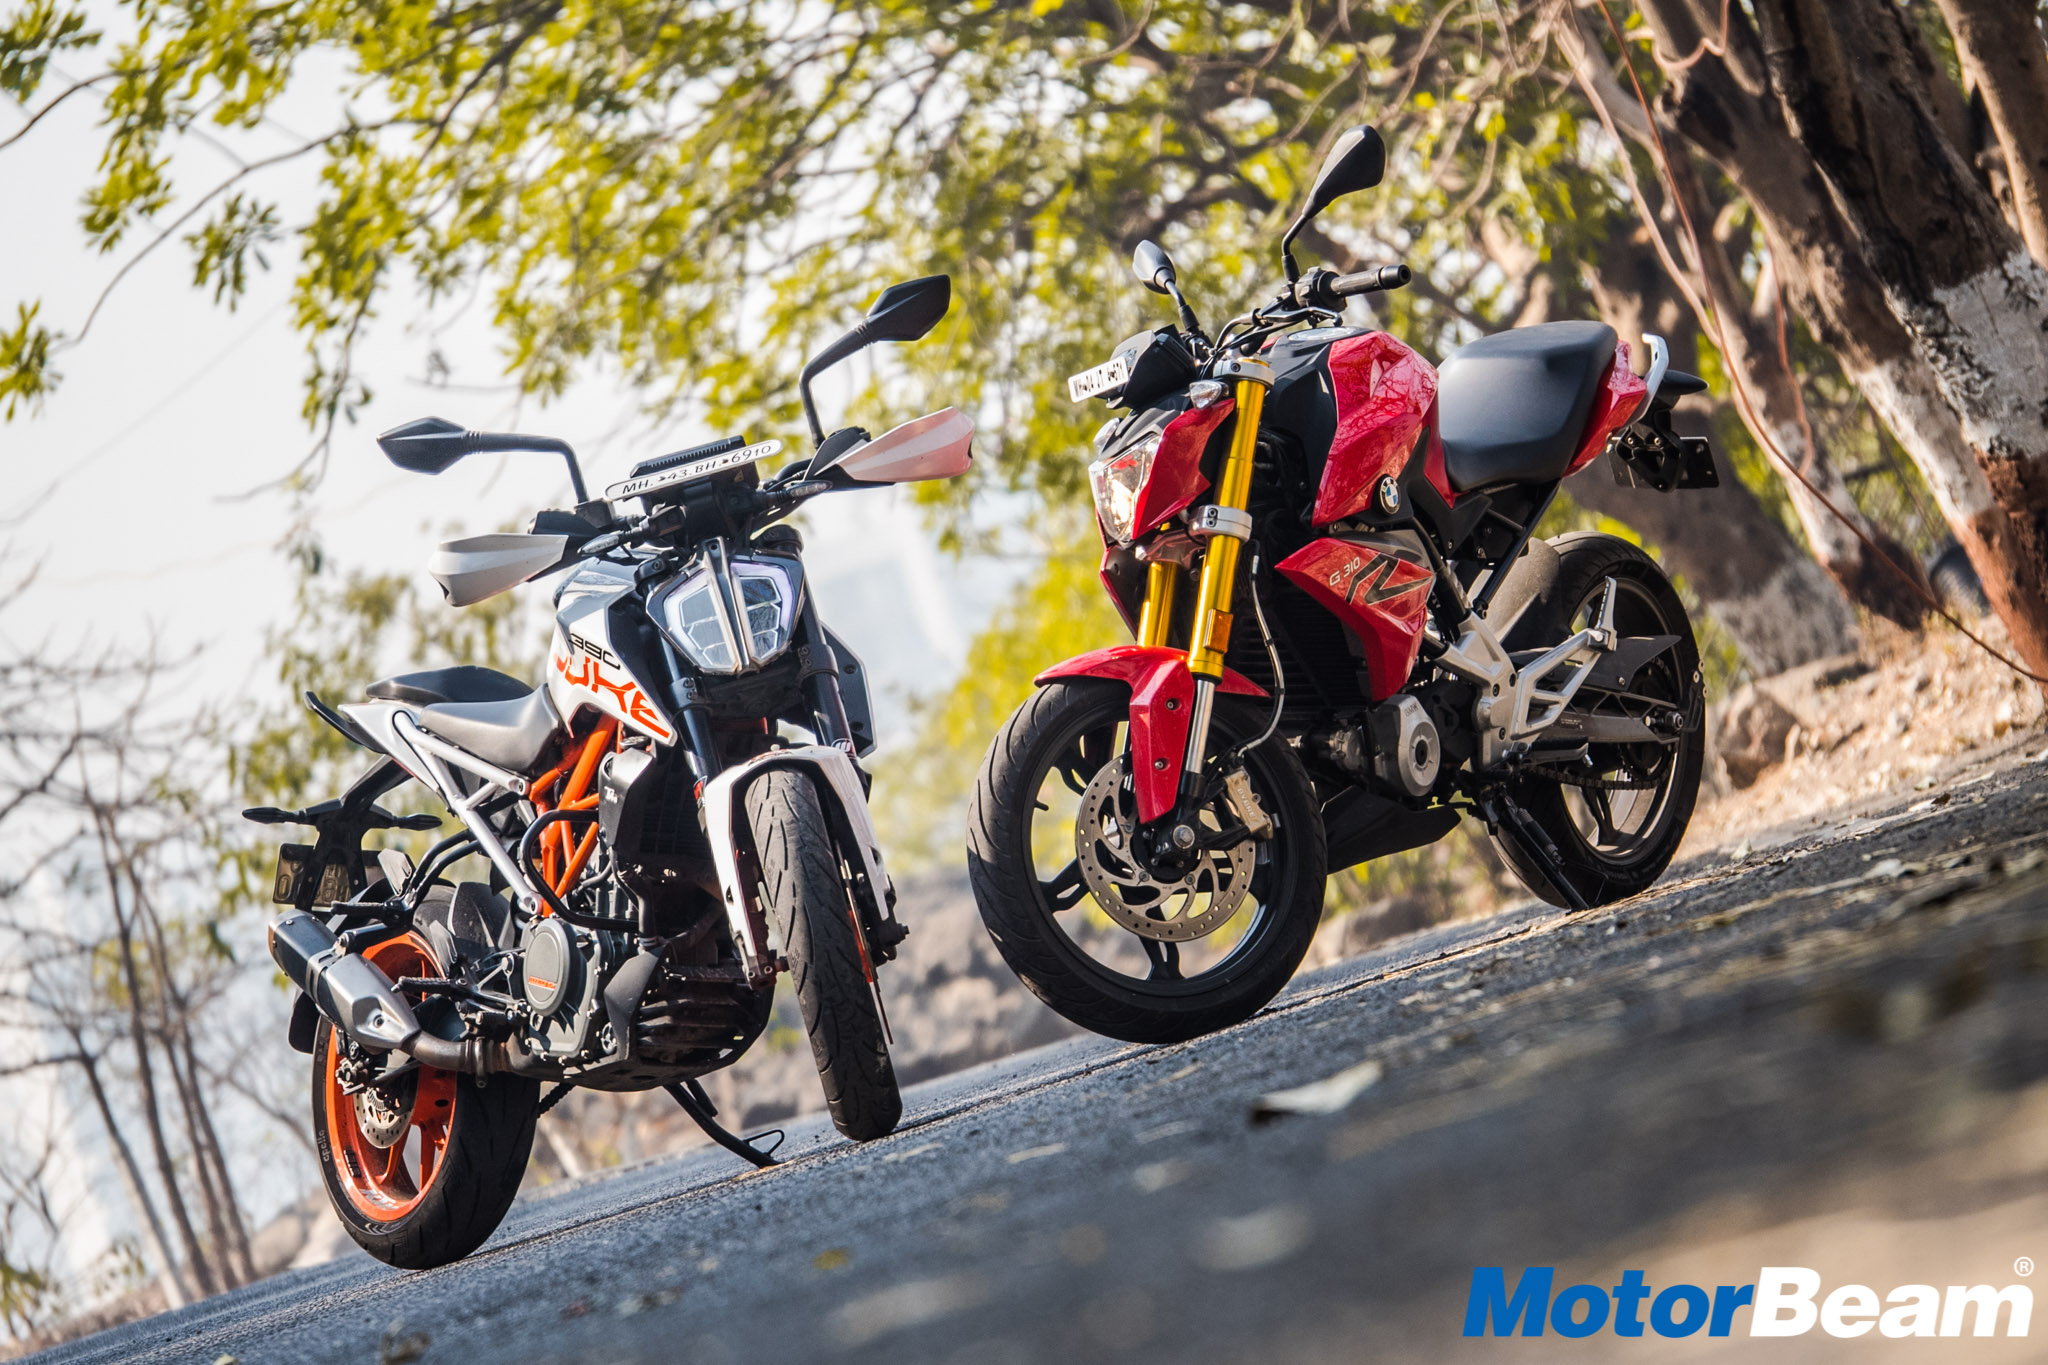 BMW G 310 R vs KTM Duke 390 Comparison Review